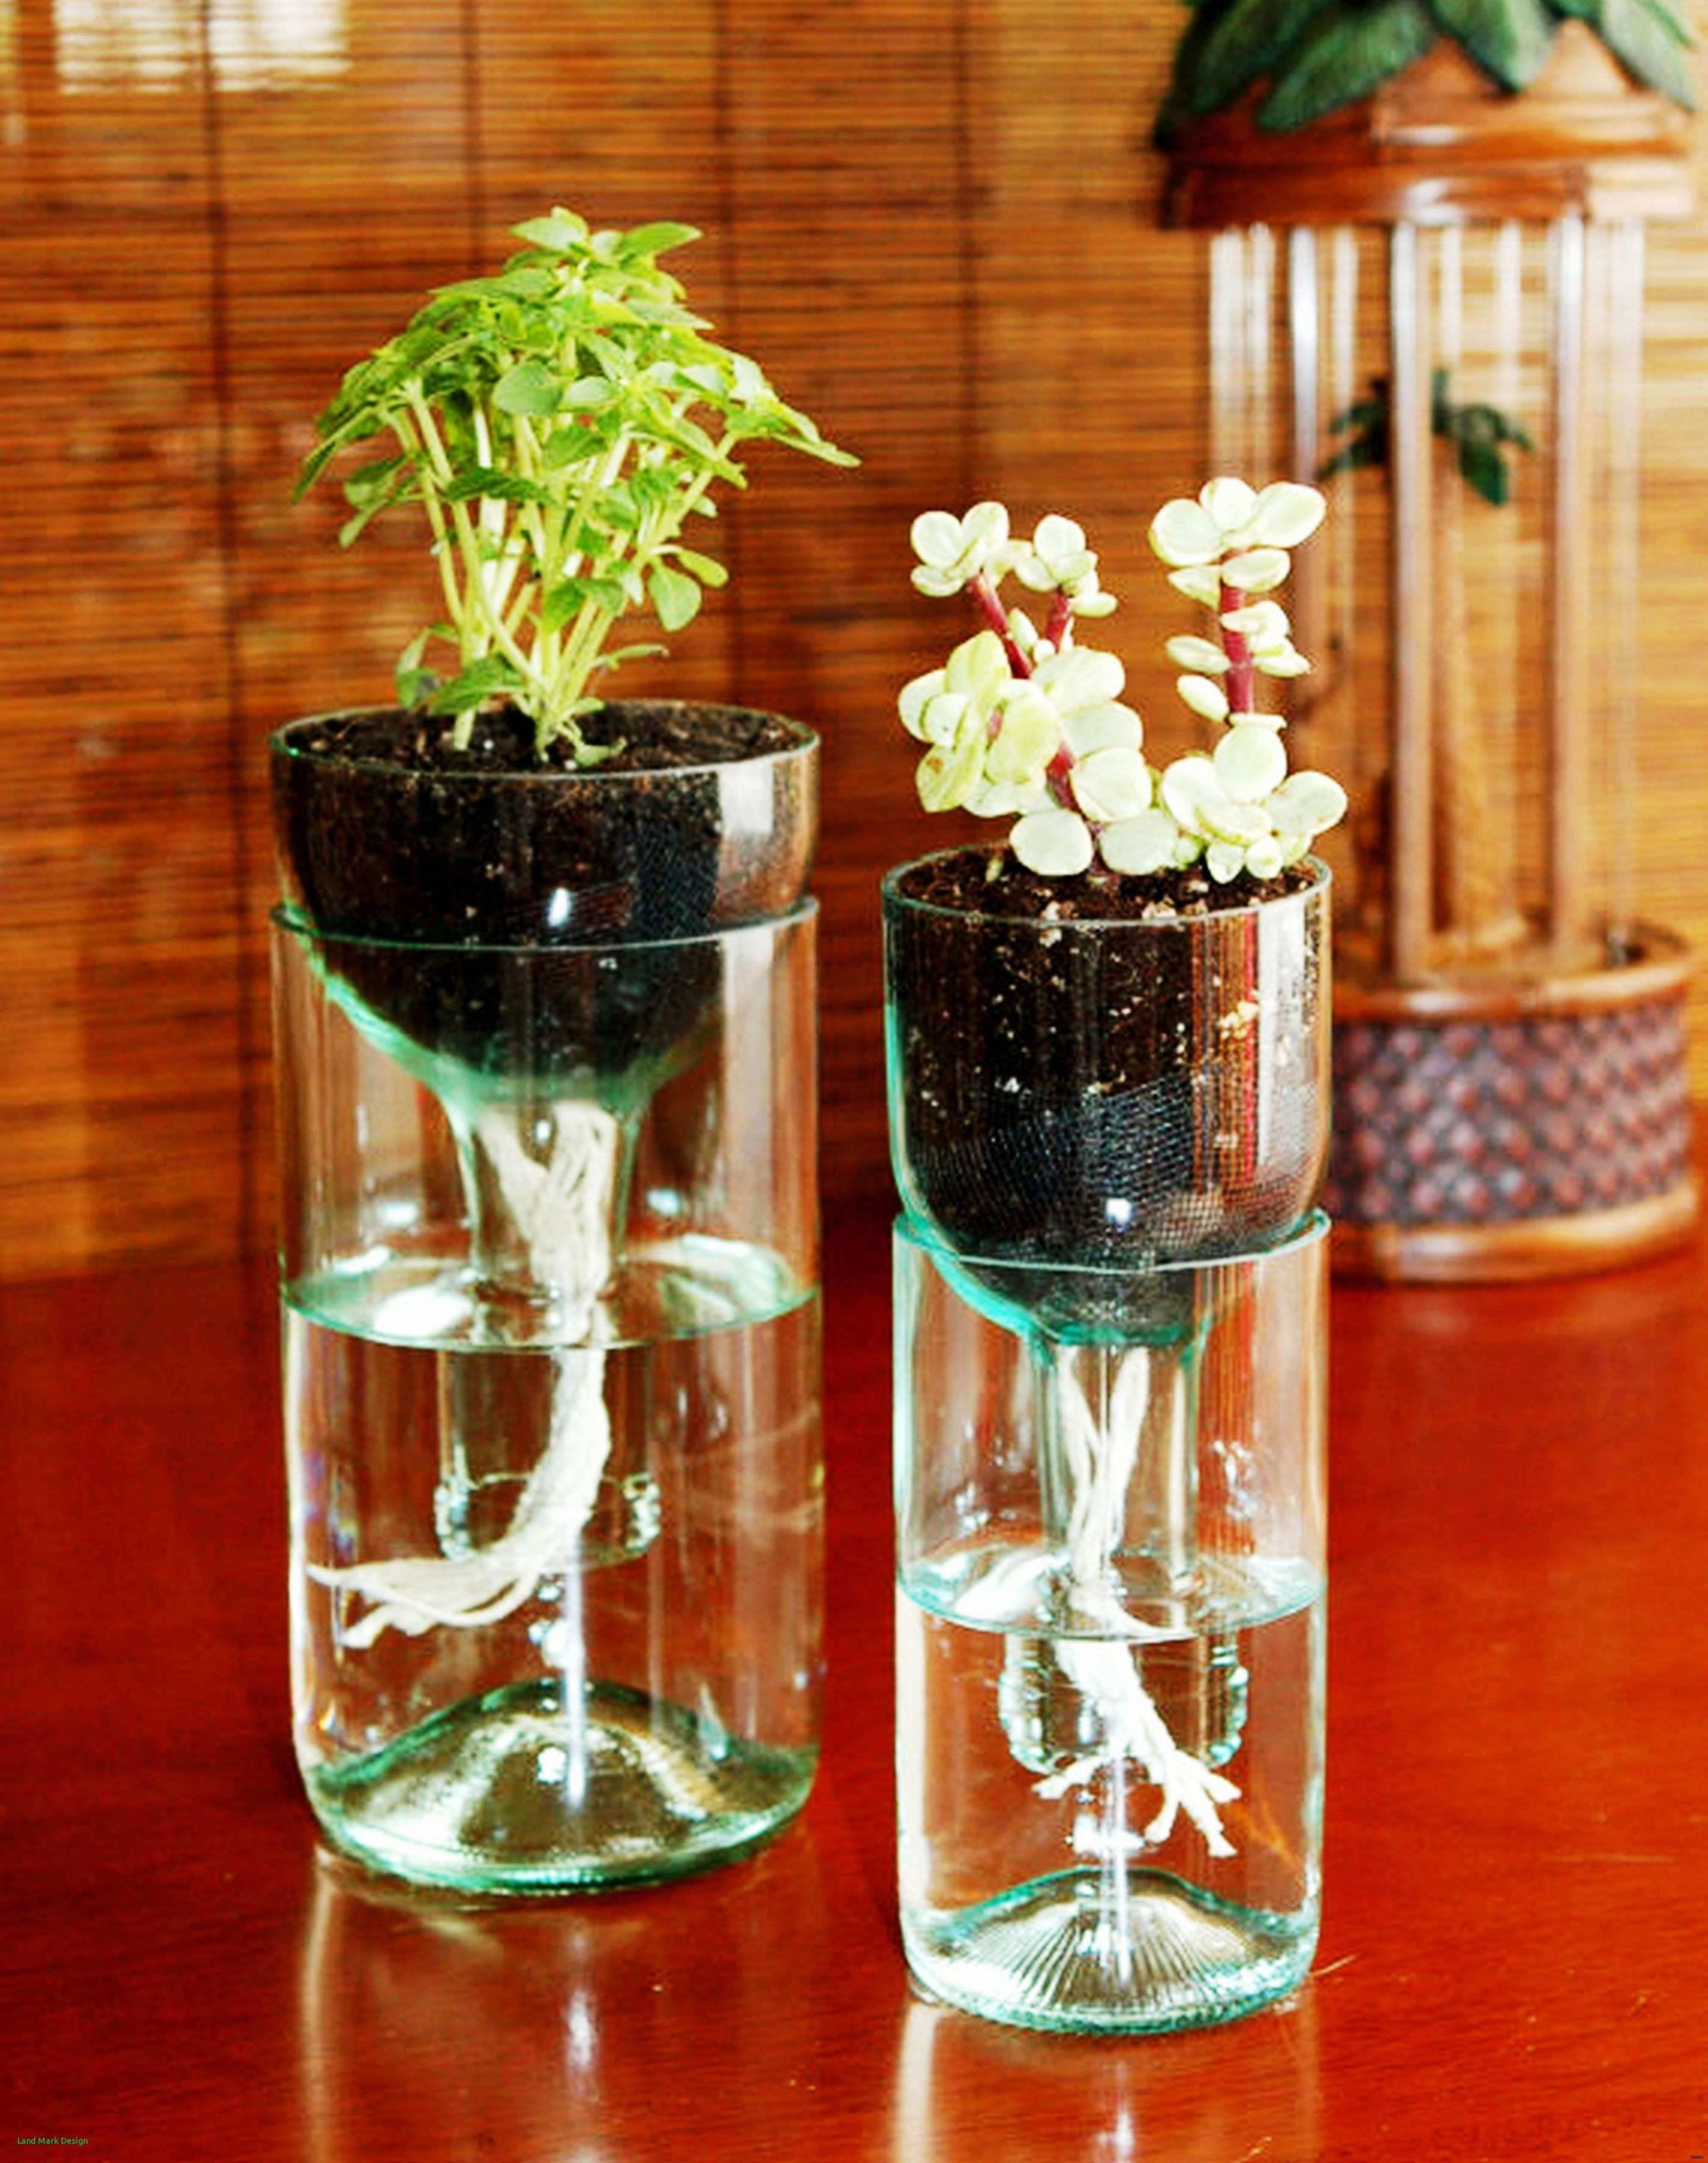 decorative vase filler ideas of 10 flower pot ideas favorite for elegant room splusna com page in stunning flower vase decoration home on diy interior ideas with homeh vases homei 0d